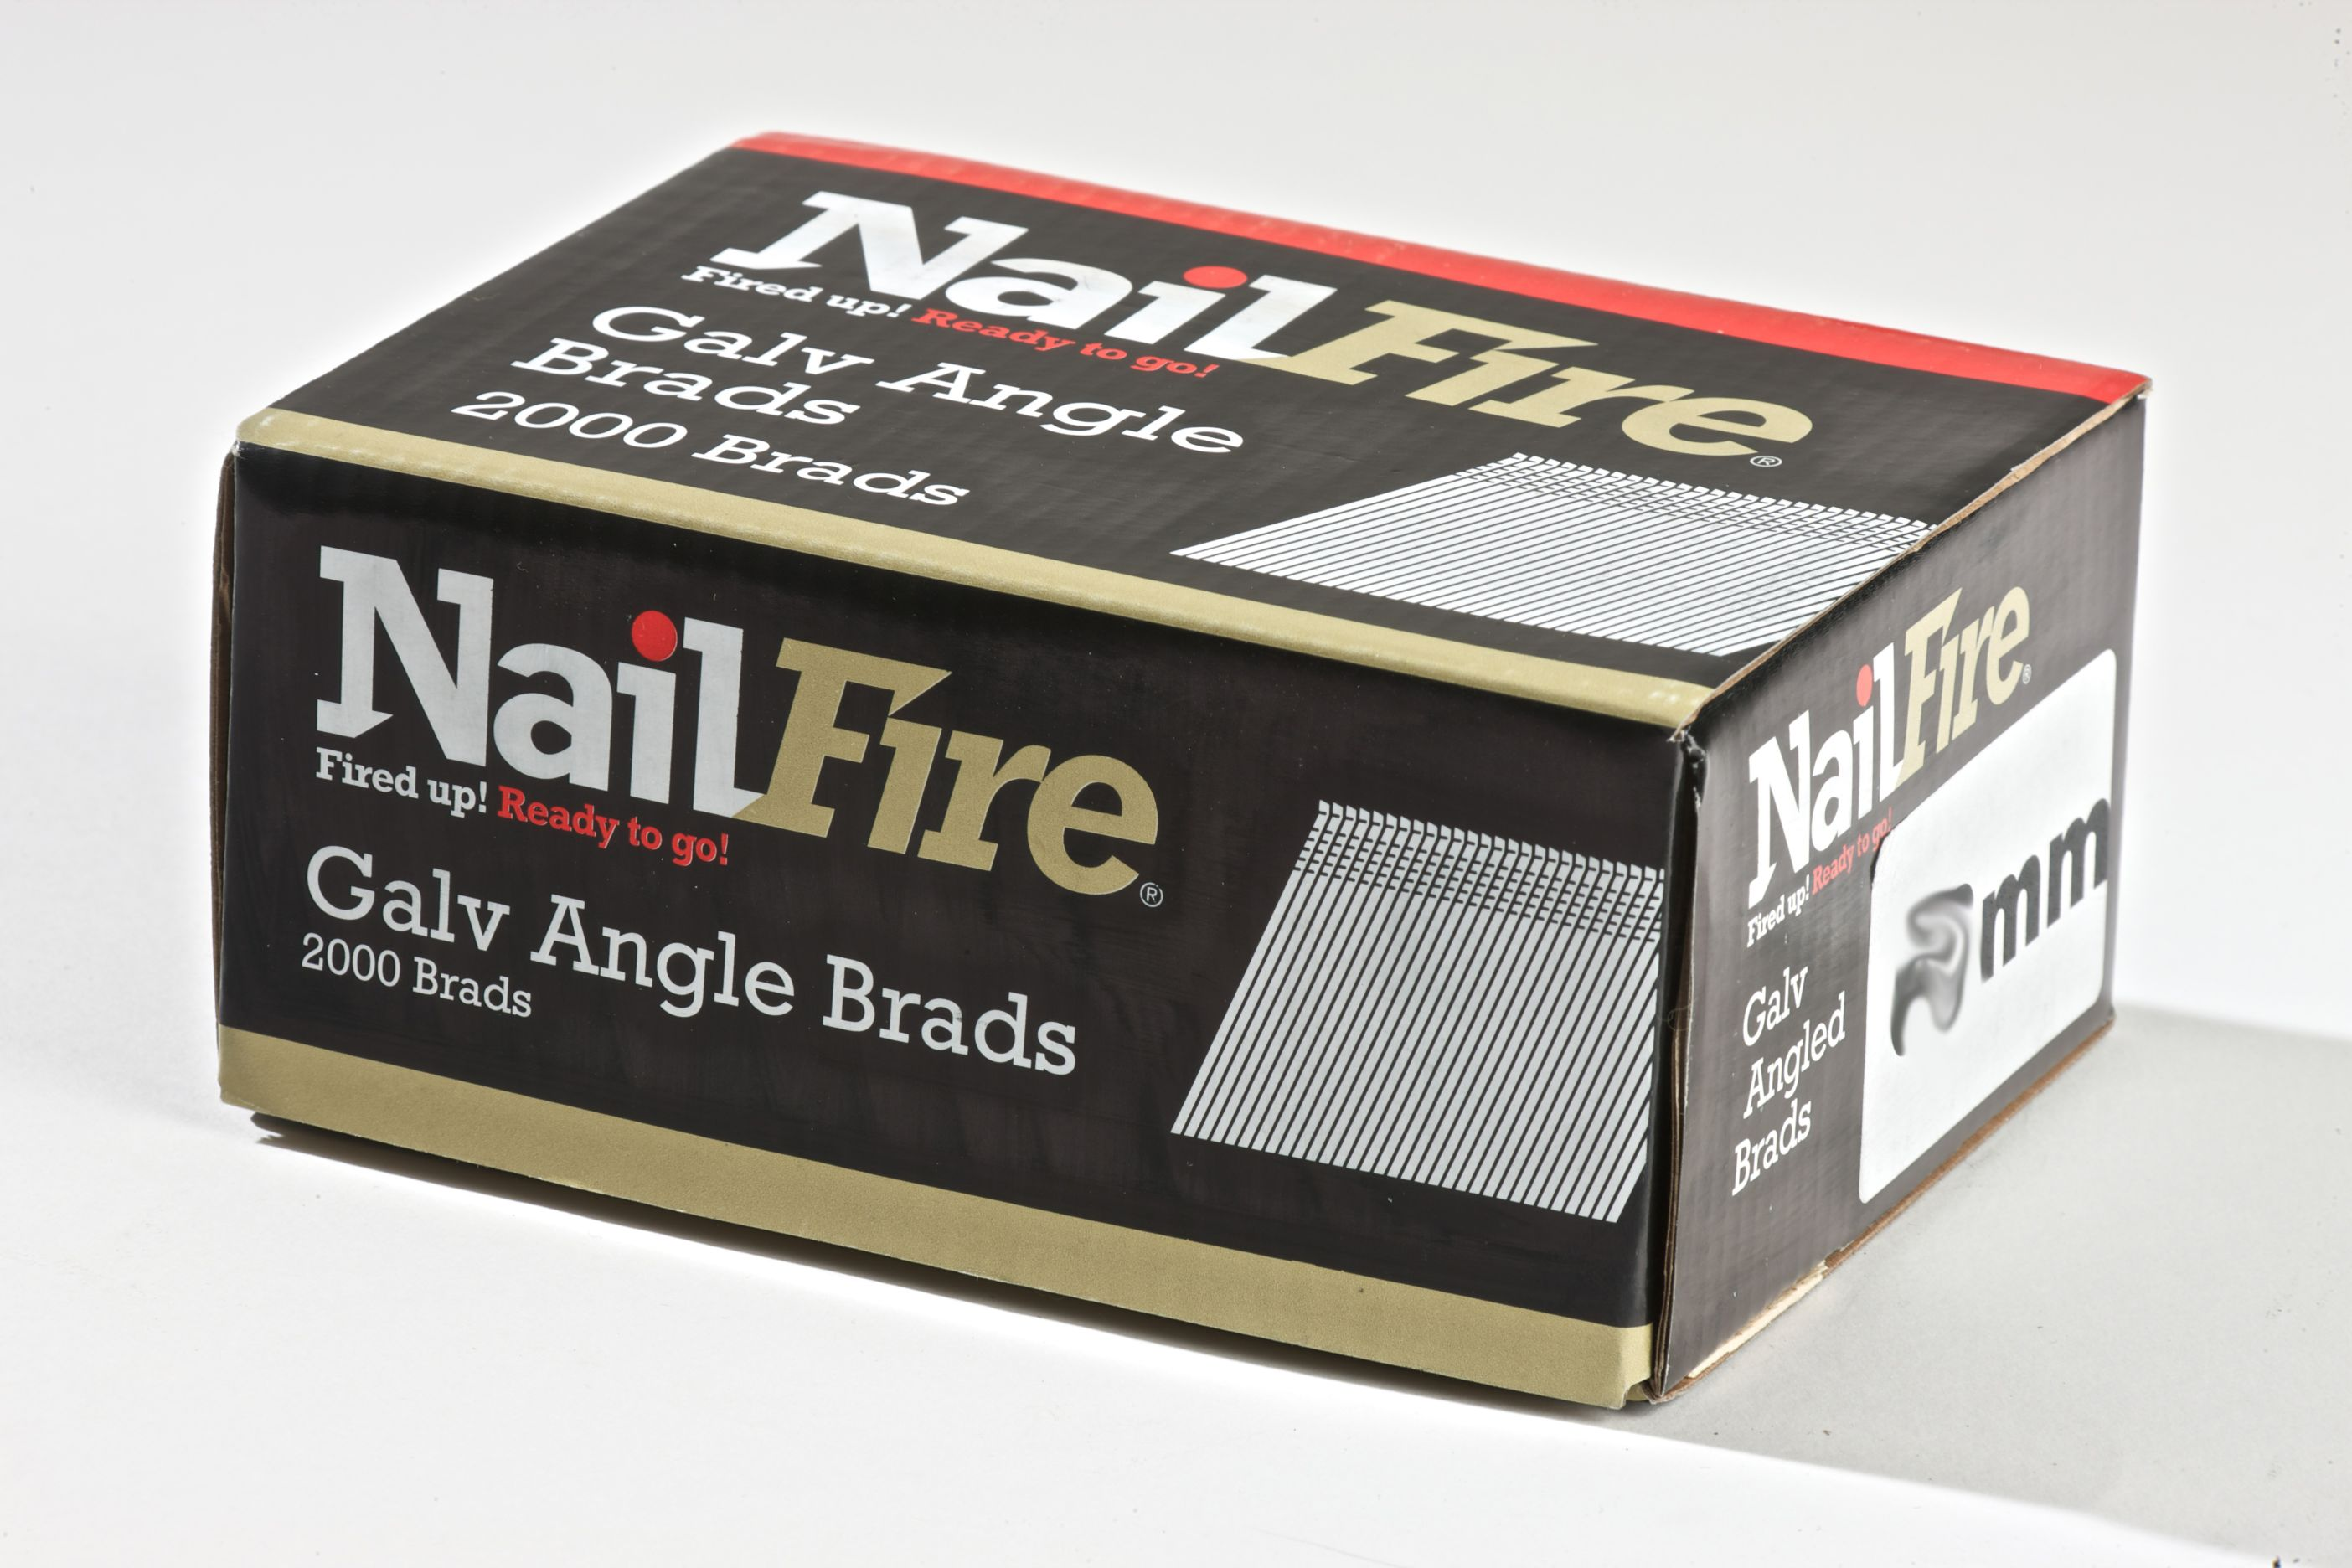 NAILFIRE 2ND FIX ANGLED E-GALV BRAD & FUEL PACK 50MM (TUB OF 2000)